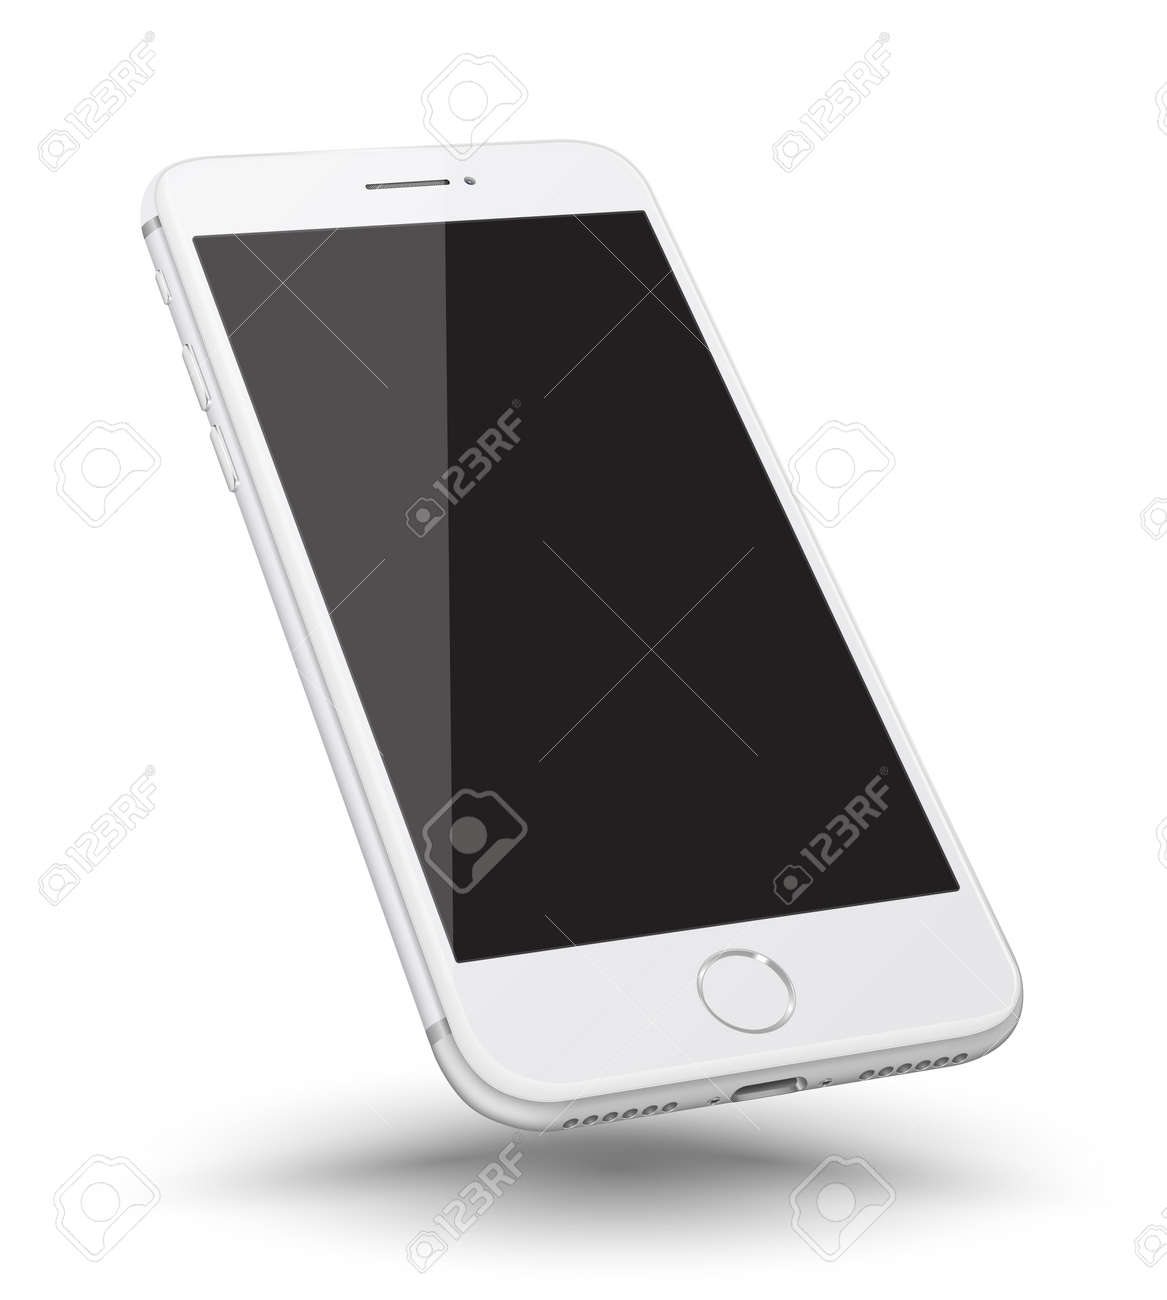 Perspective smartphone realistic mock-up. Vector illustration. - 63594547